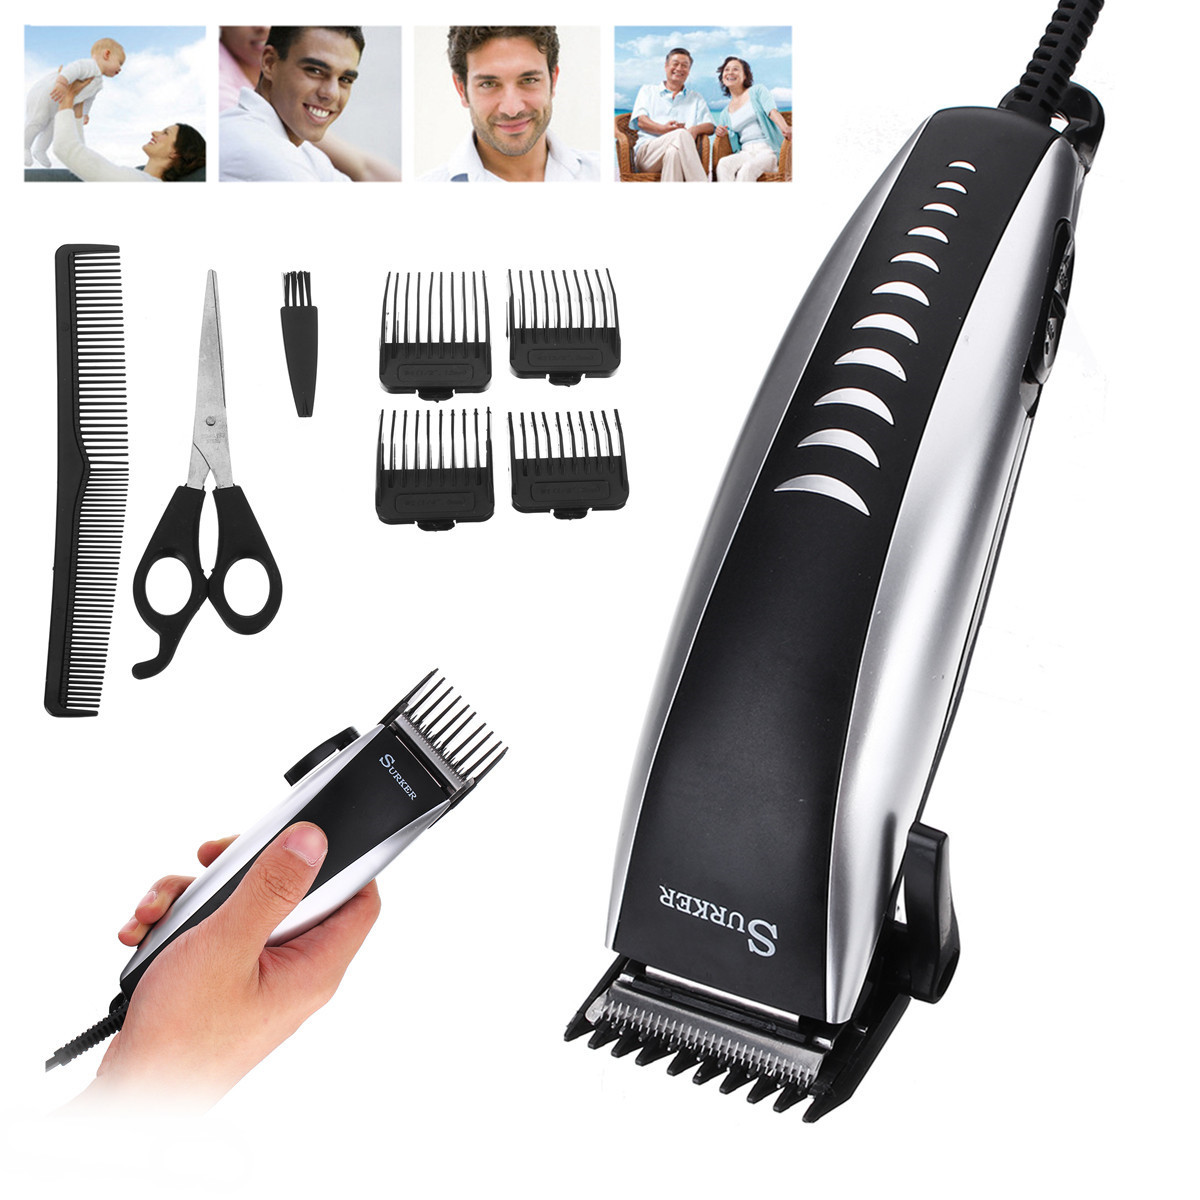 Professional Electric Hair Trimmer Hair Clippers Cutting For Kids Man Adult Anti Slip Set Scissor EU Plug Adjustable 220V